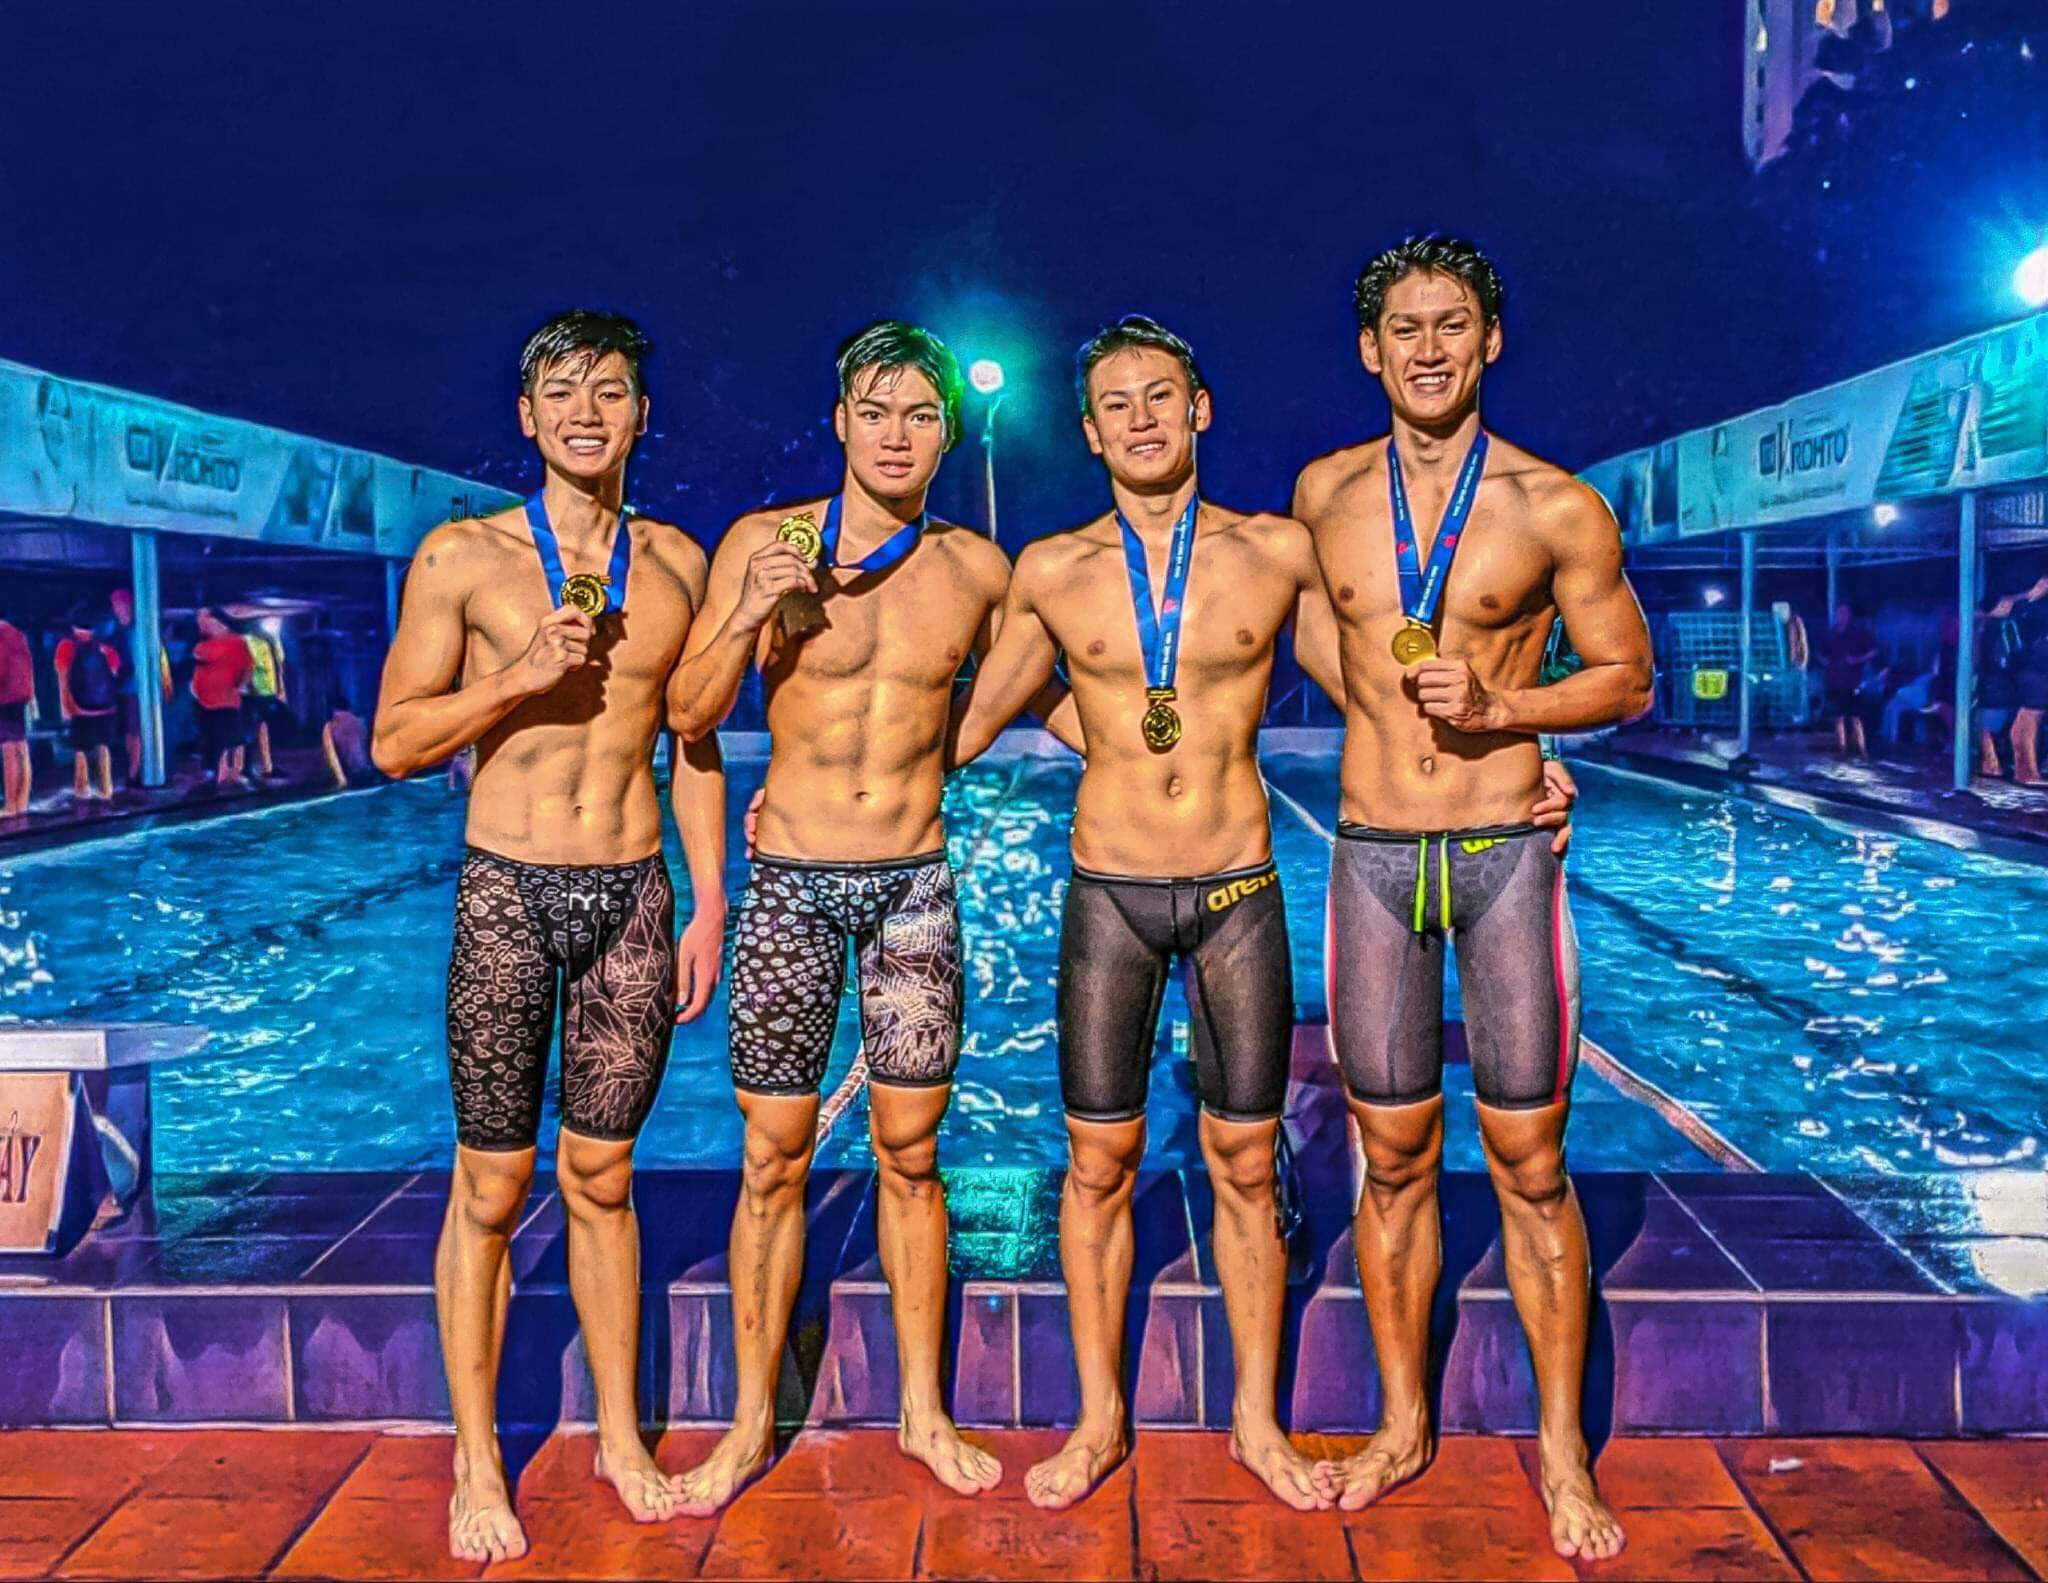 Swimmer Nguyen Huu Kim Son (left) and his Da Nang teammates are pictured with their medals at the National Swimming Championships in Ho Chi Minh City, October 2020. Photo: T.P. / Tuoi Tre